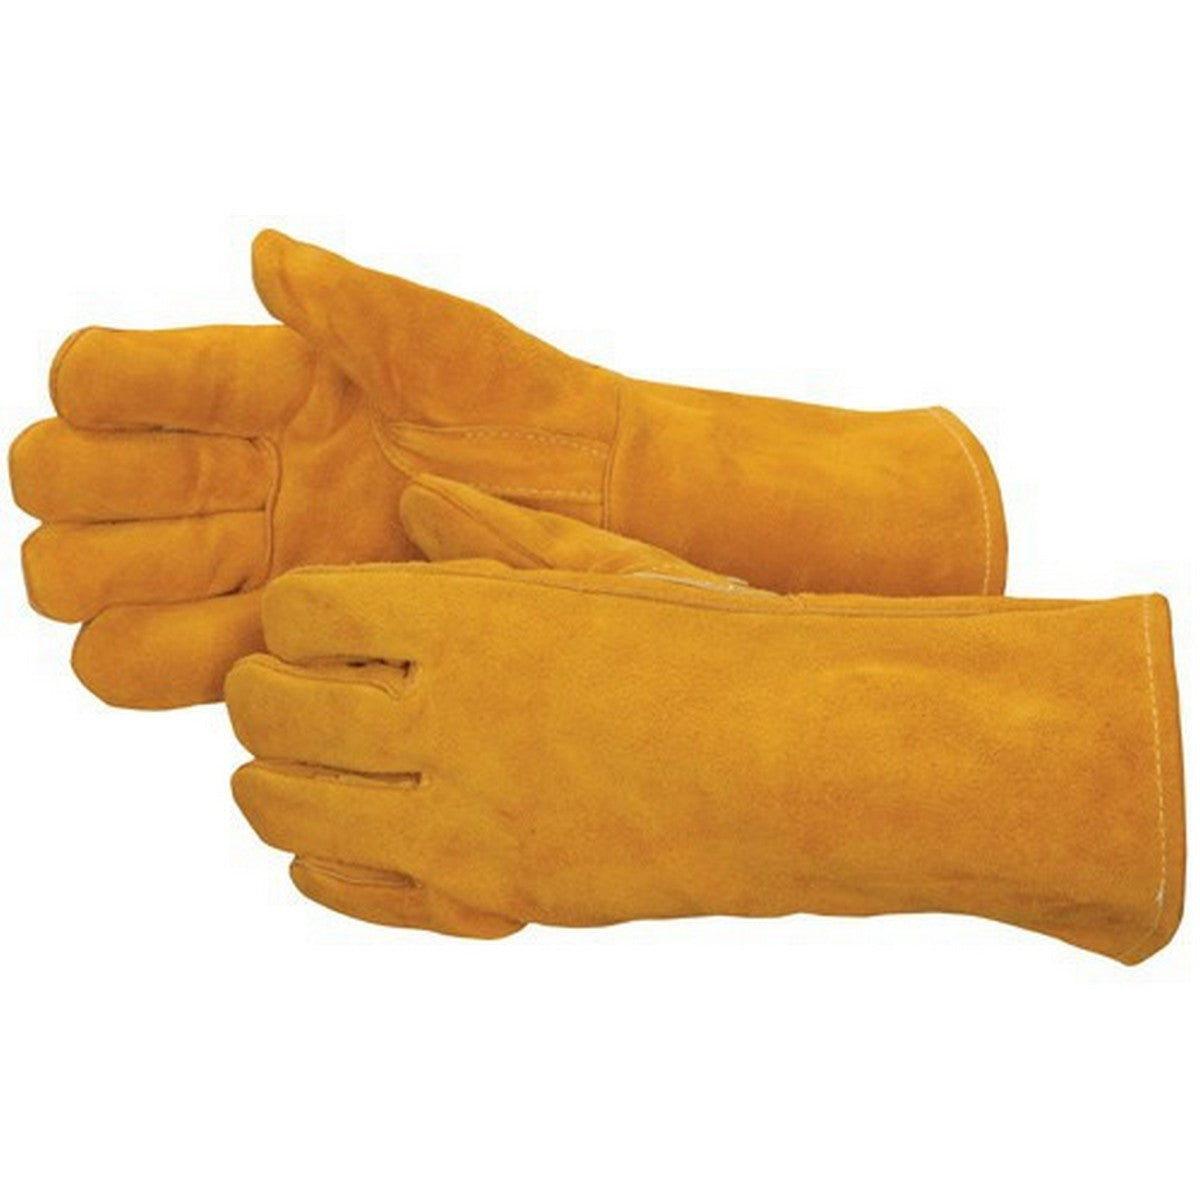 Image of Welders Gauntlet glove Mustard